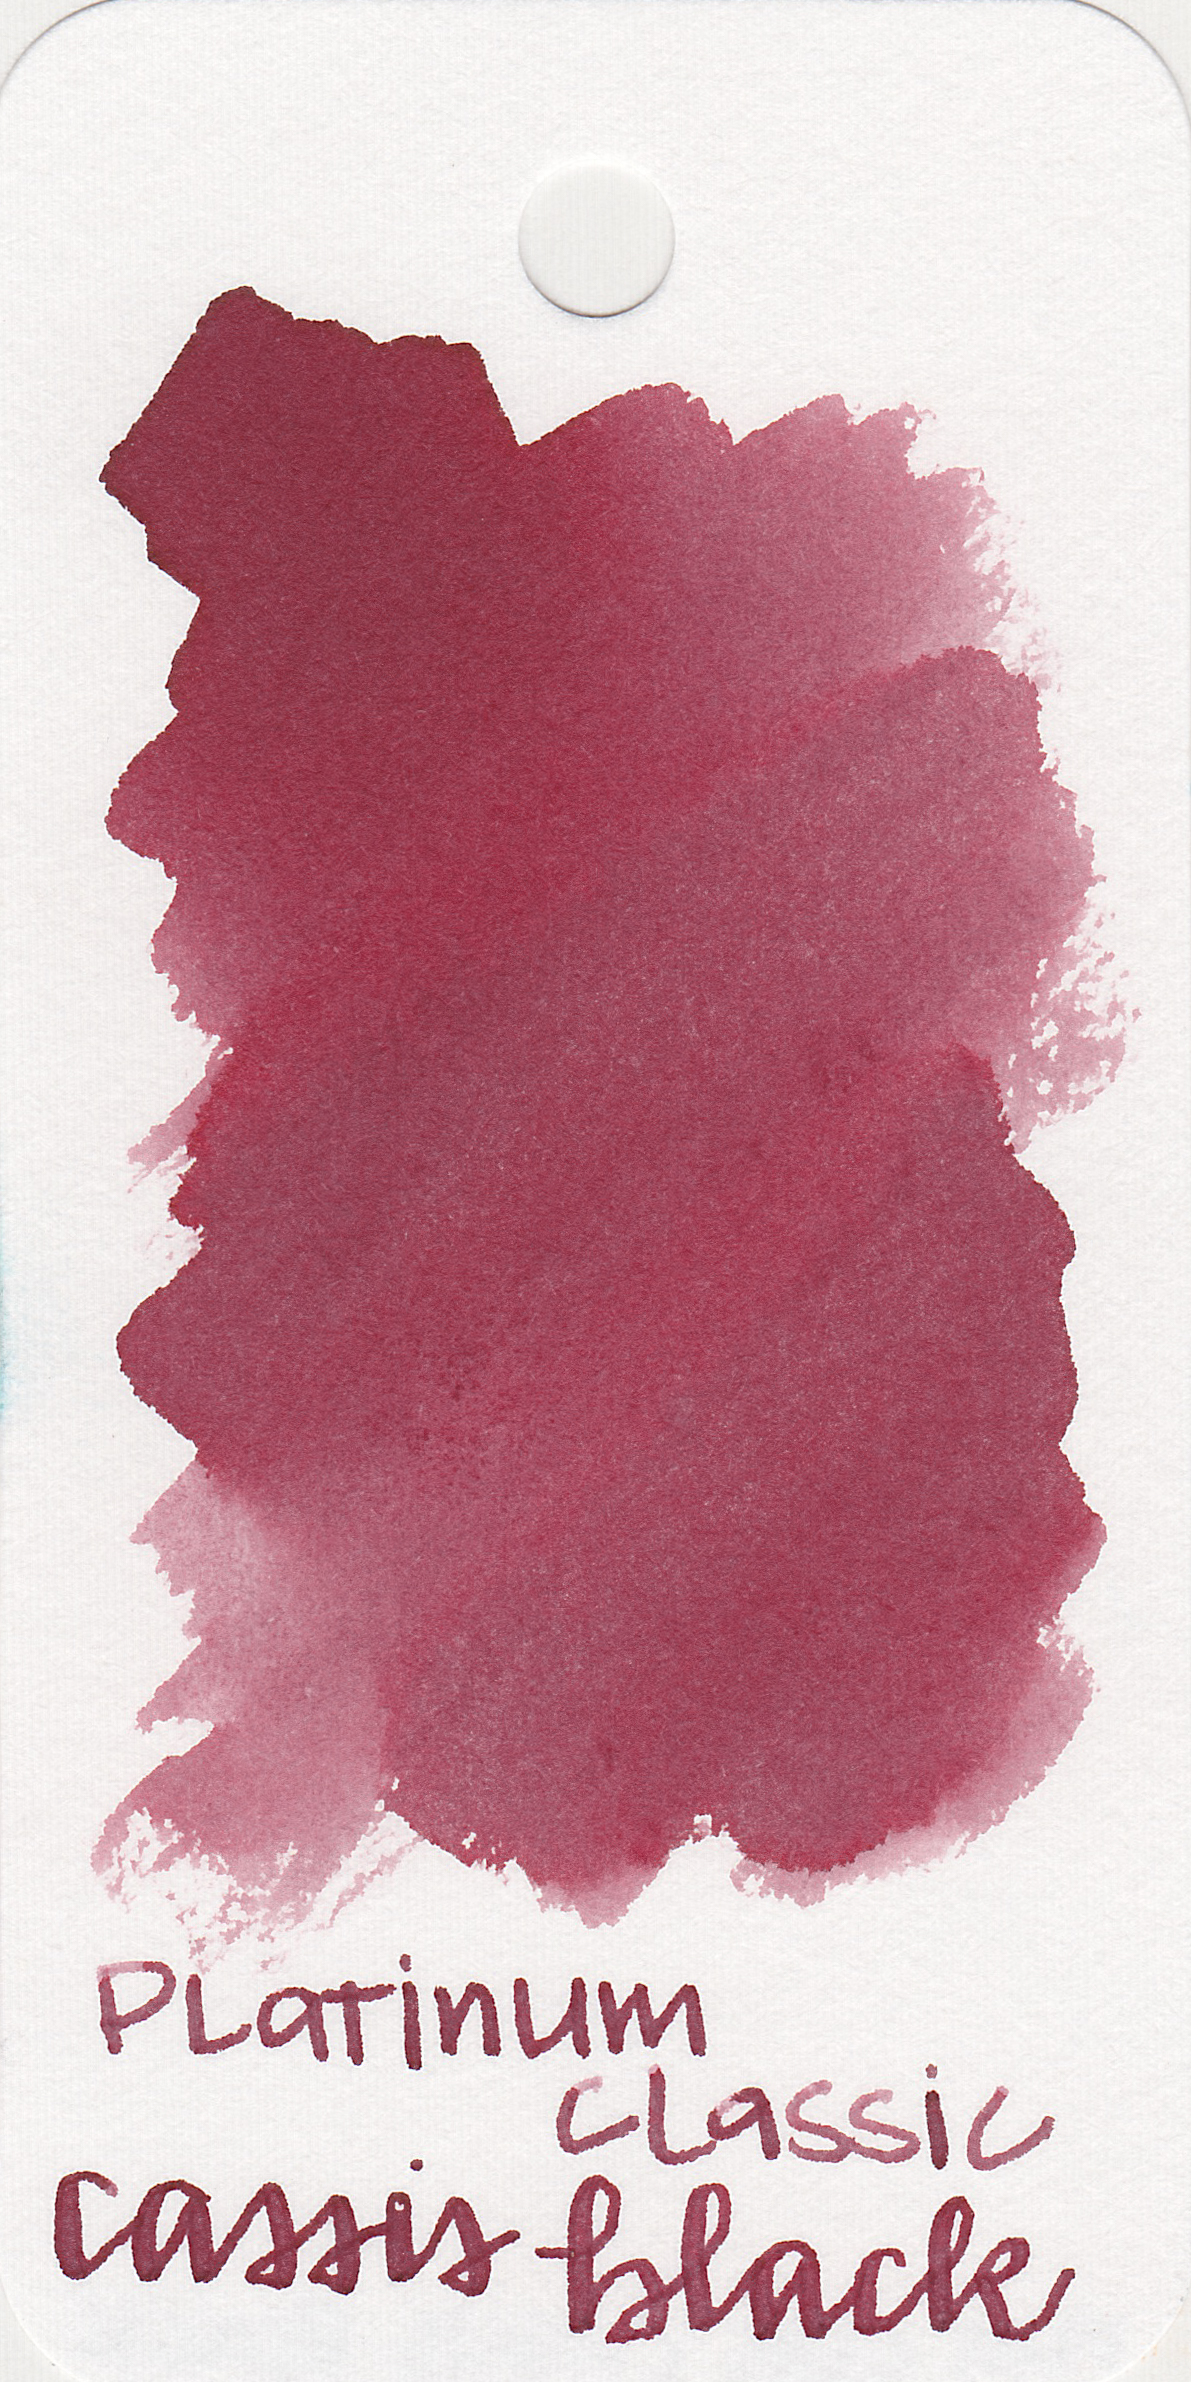 The color: - Cassis Black is a dark, unsaturated red.